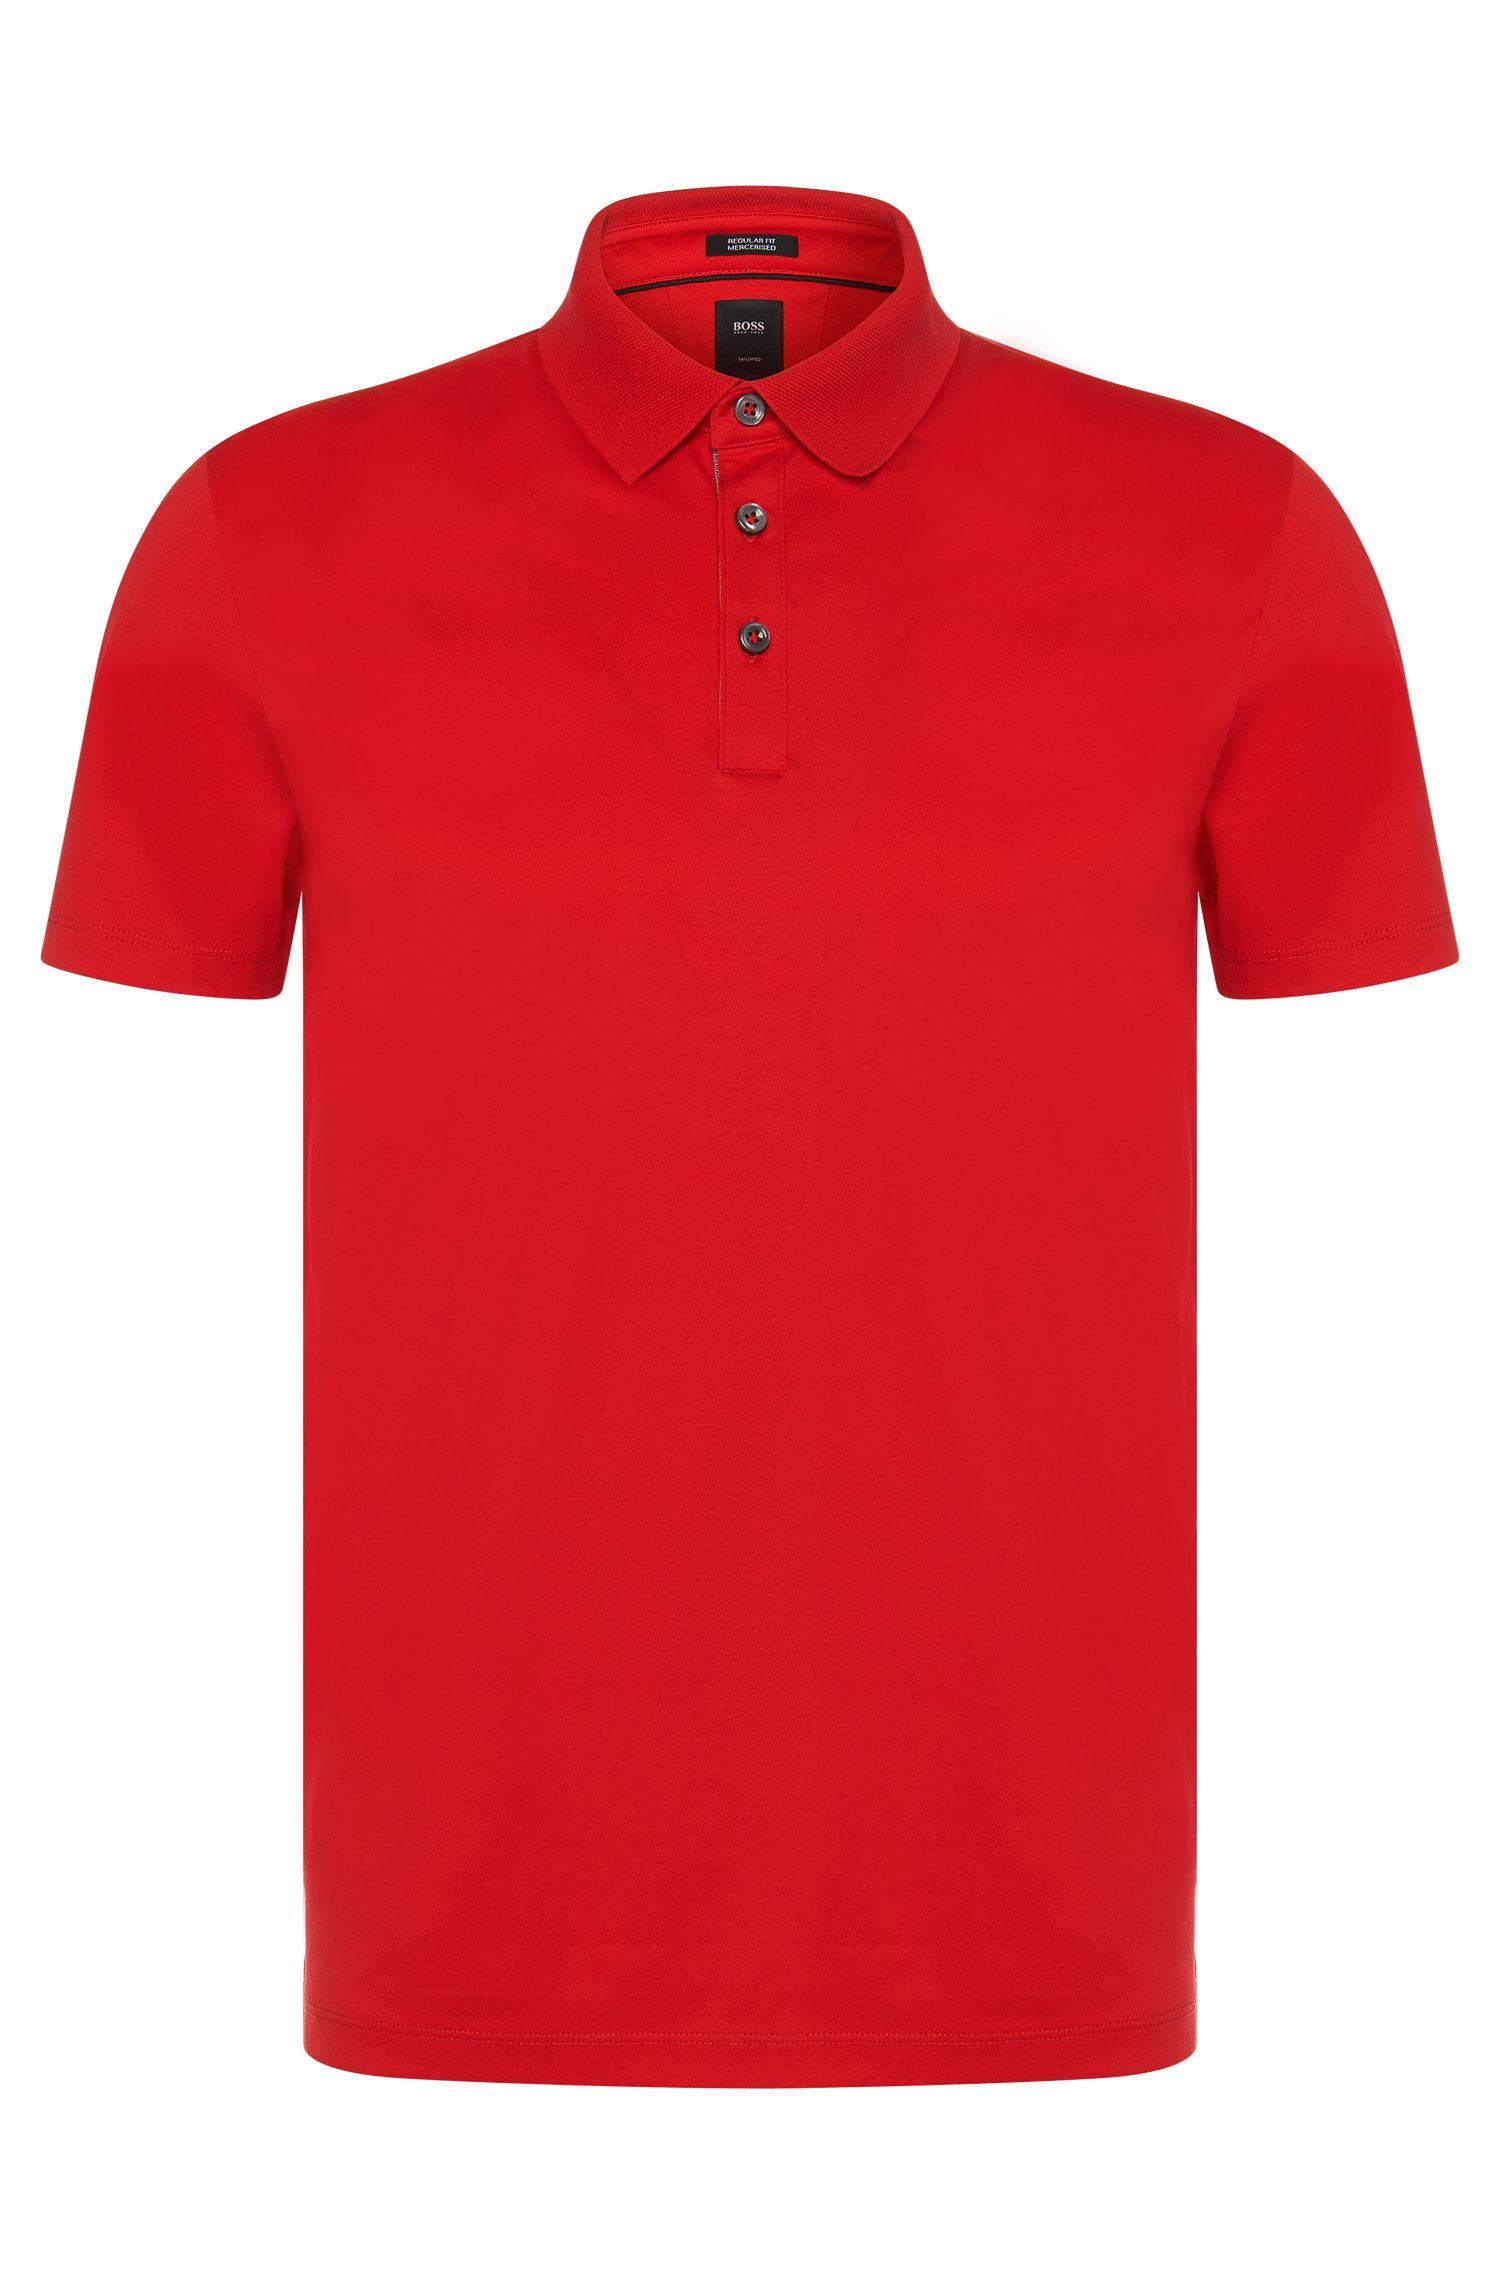 Regular-Fit Tailored Poloshirt aus merzerisierter Baumwolle: 'T-Perry 09'